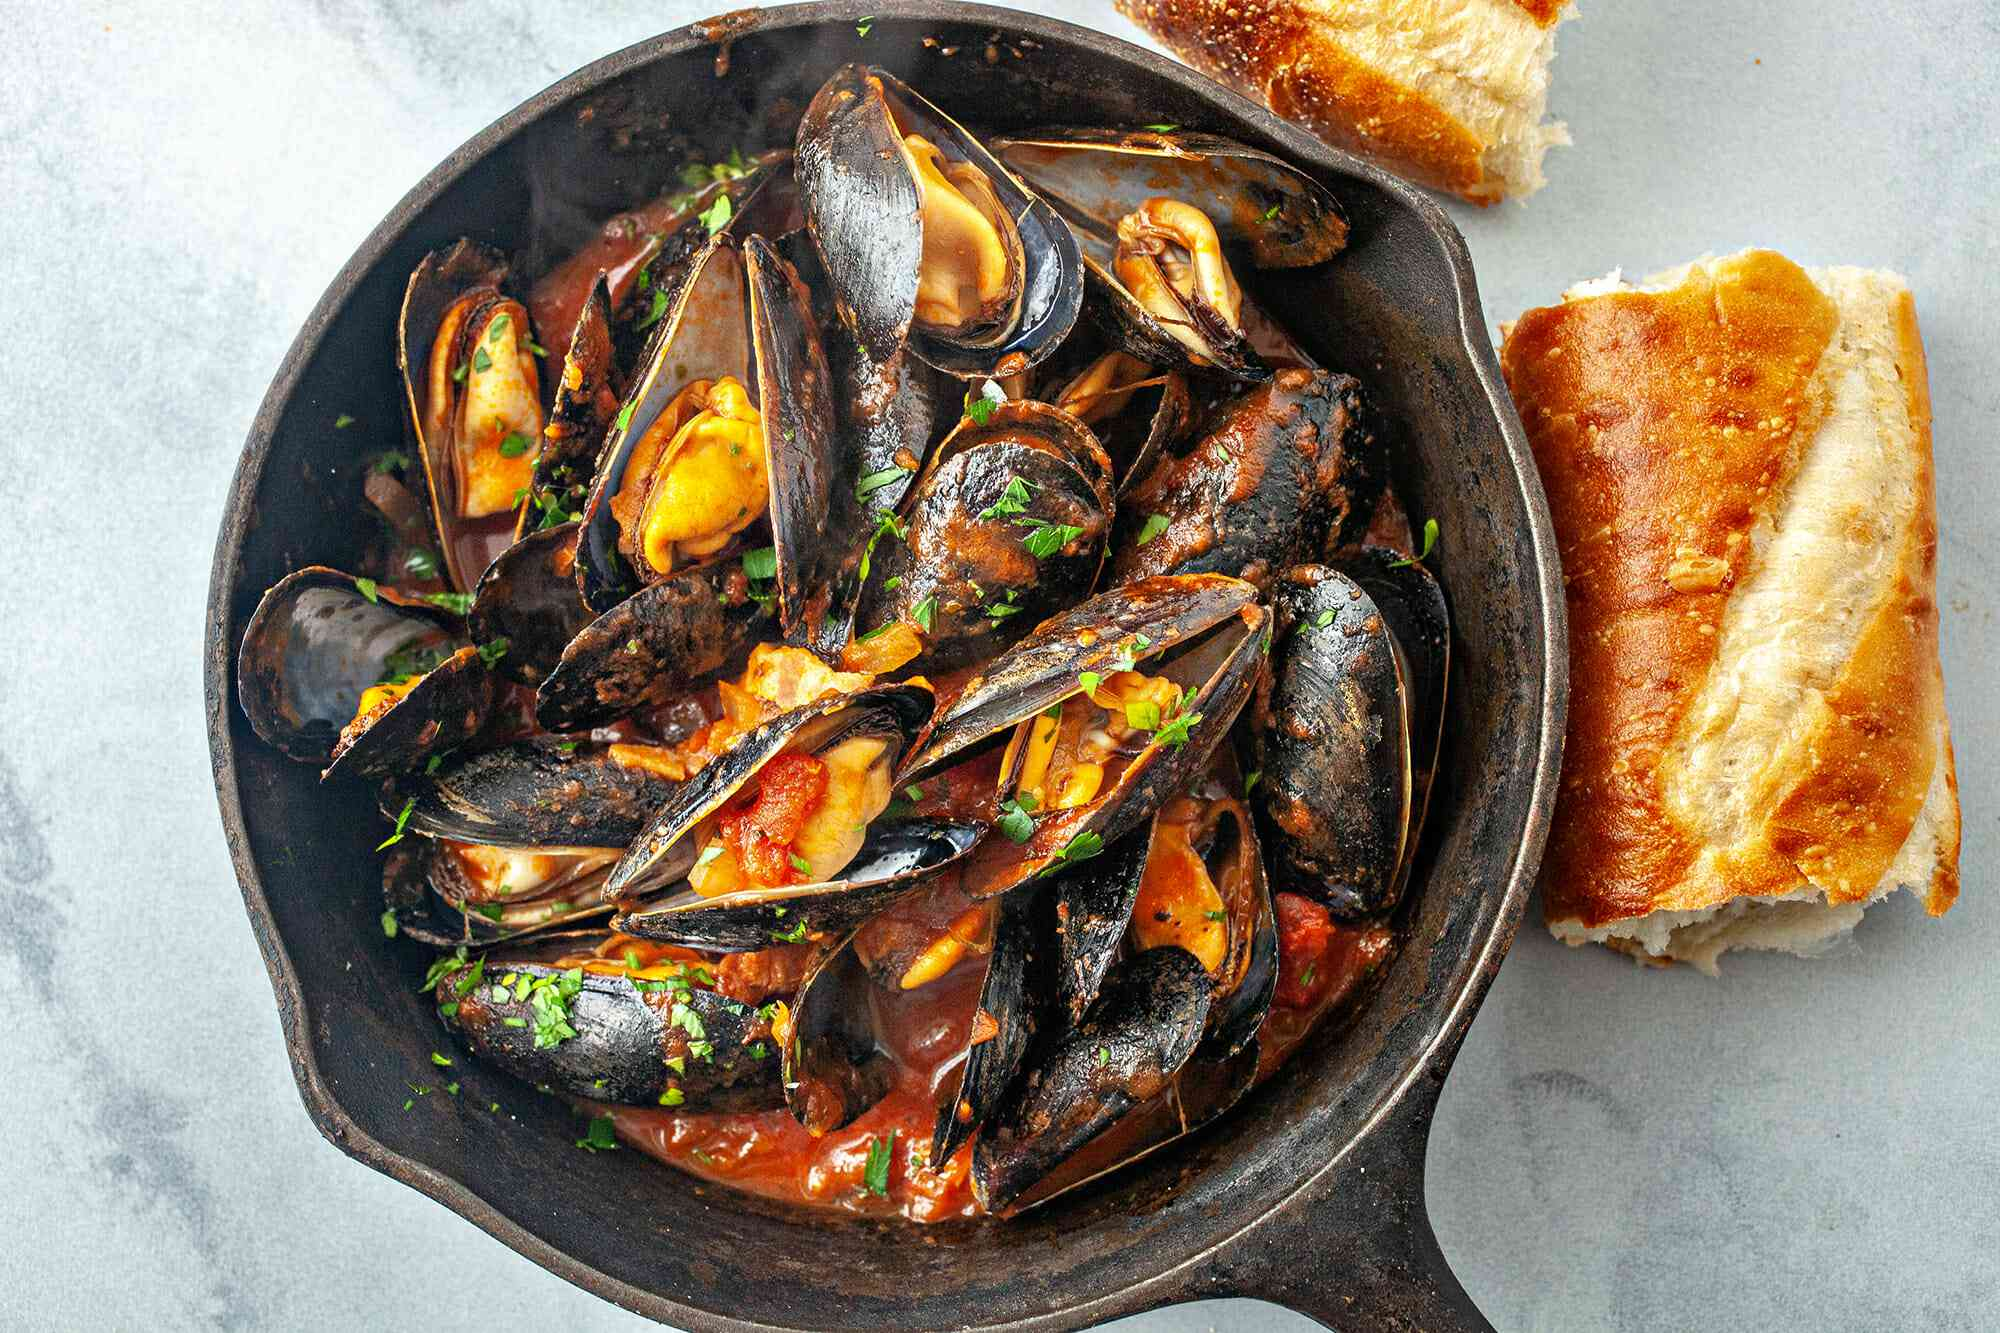 Steamed Mussels in Tomato Sauce